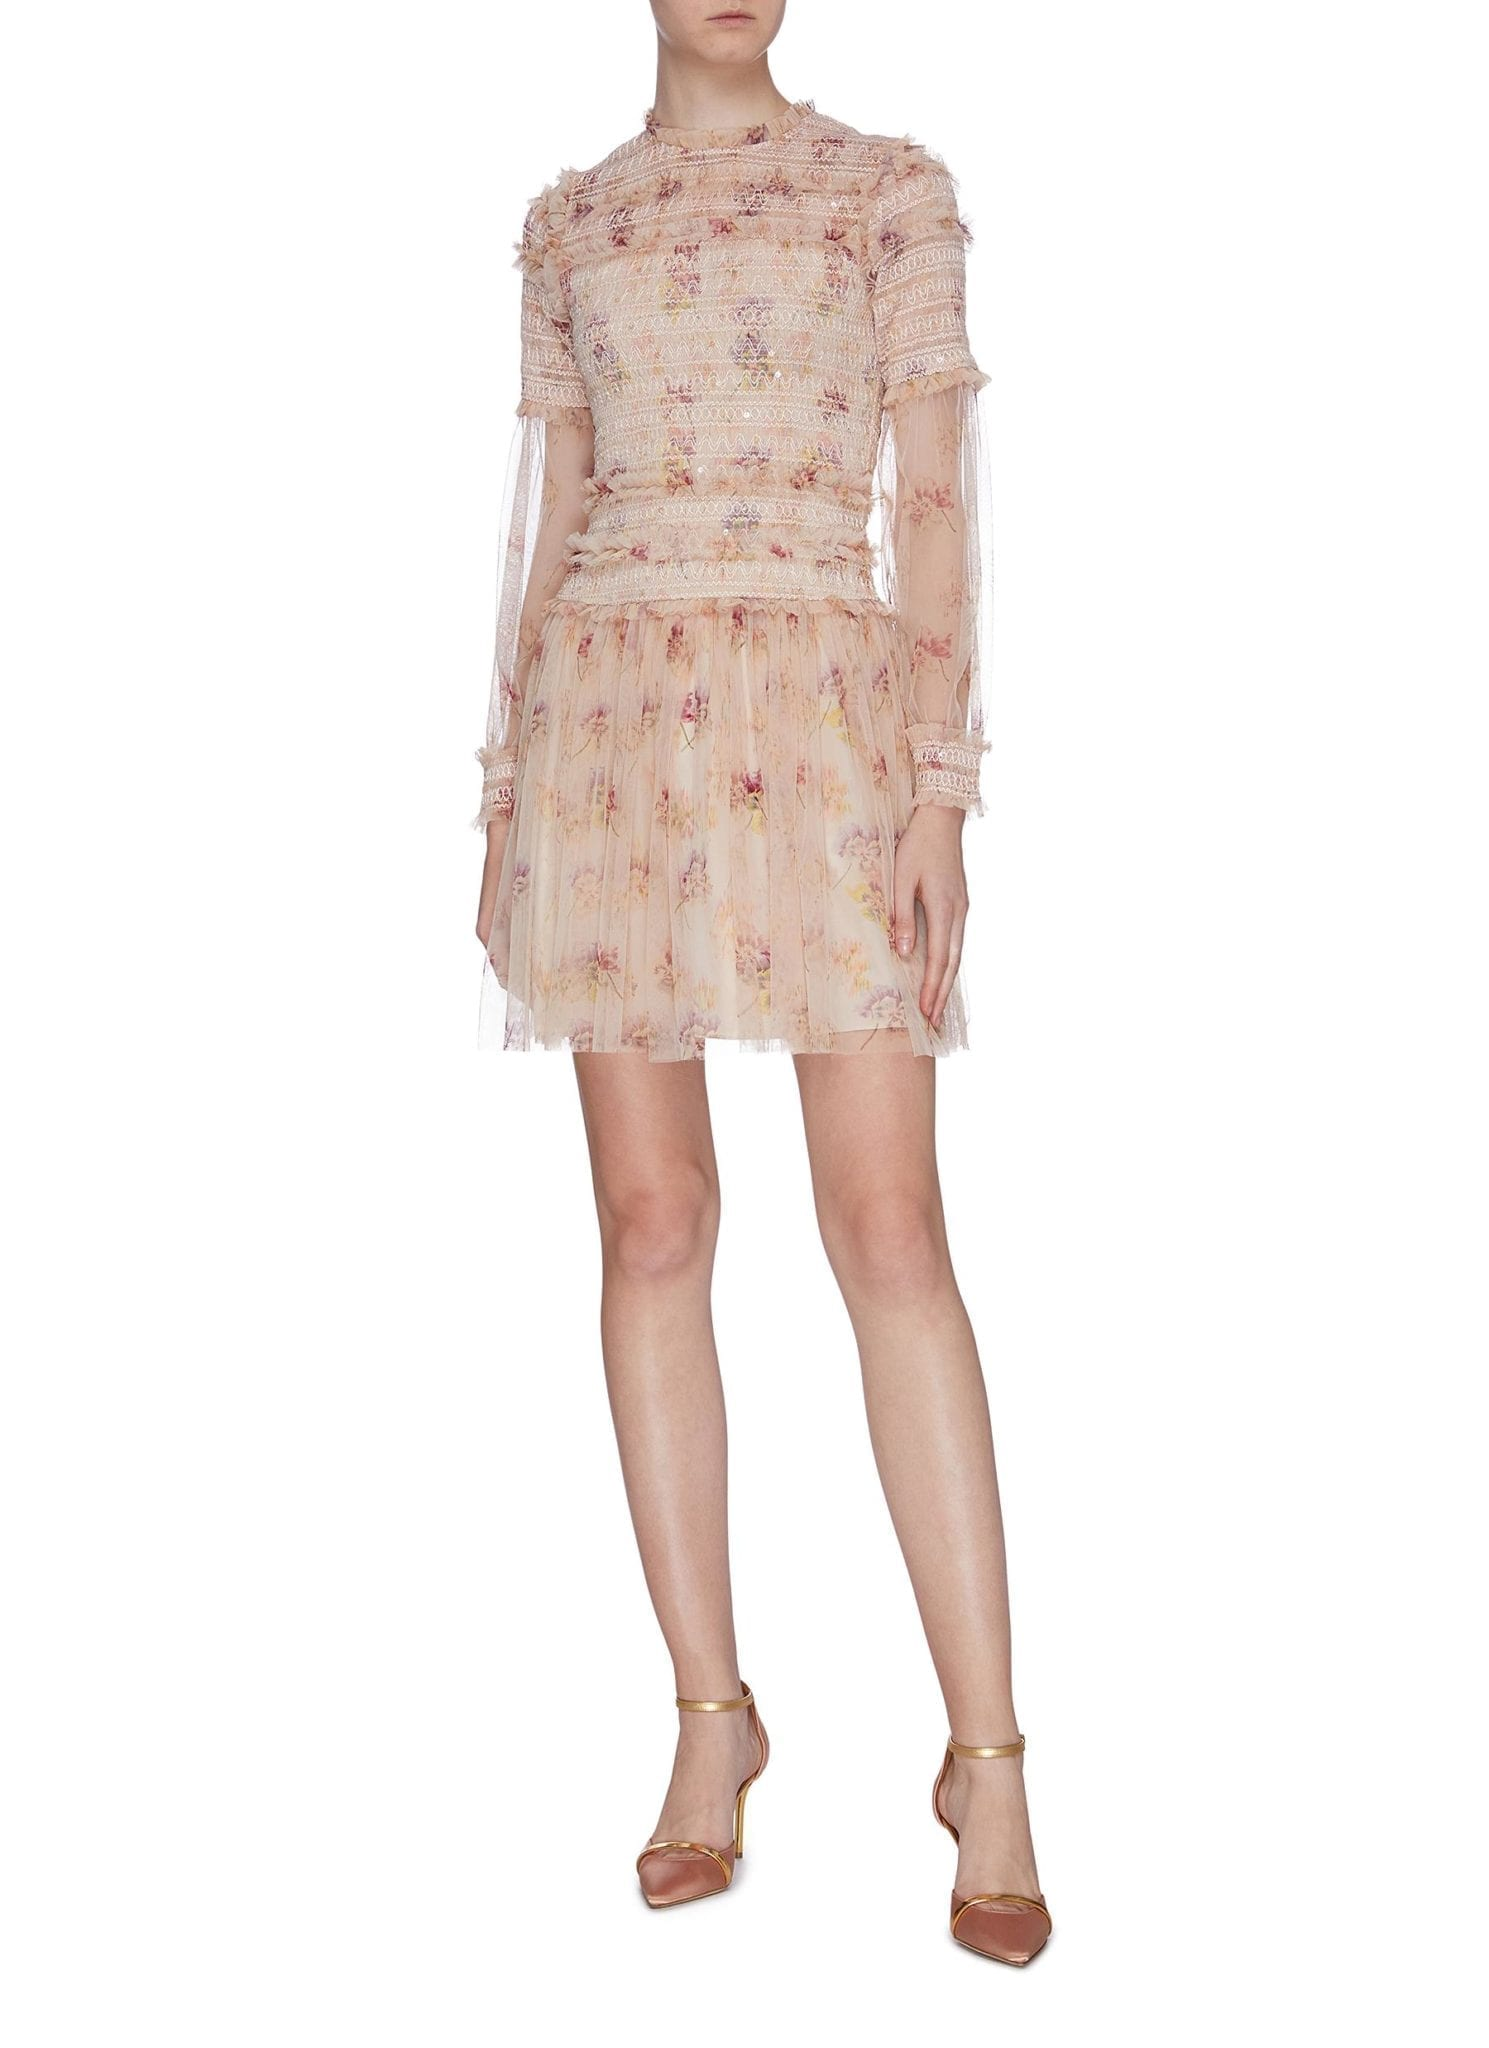 NEEDLE & THREAD 'Think Of Me' Ruffle Smocked Floral Print Tulle Dress